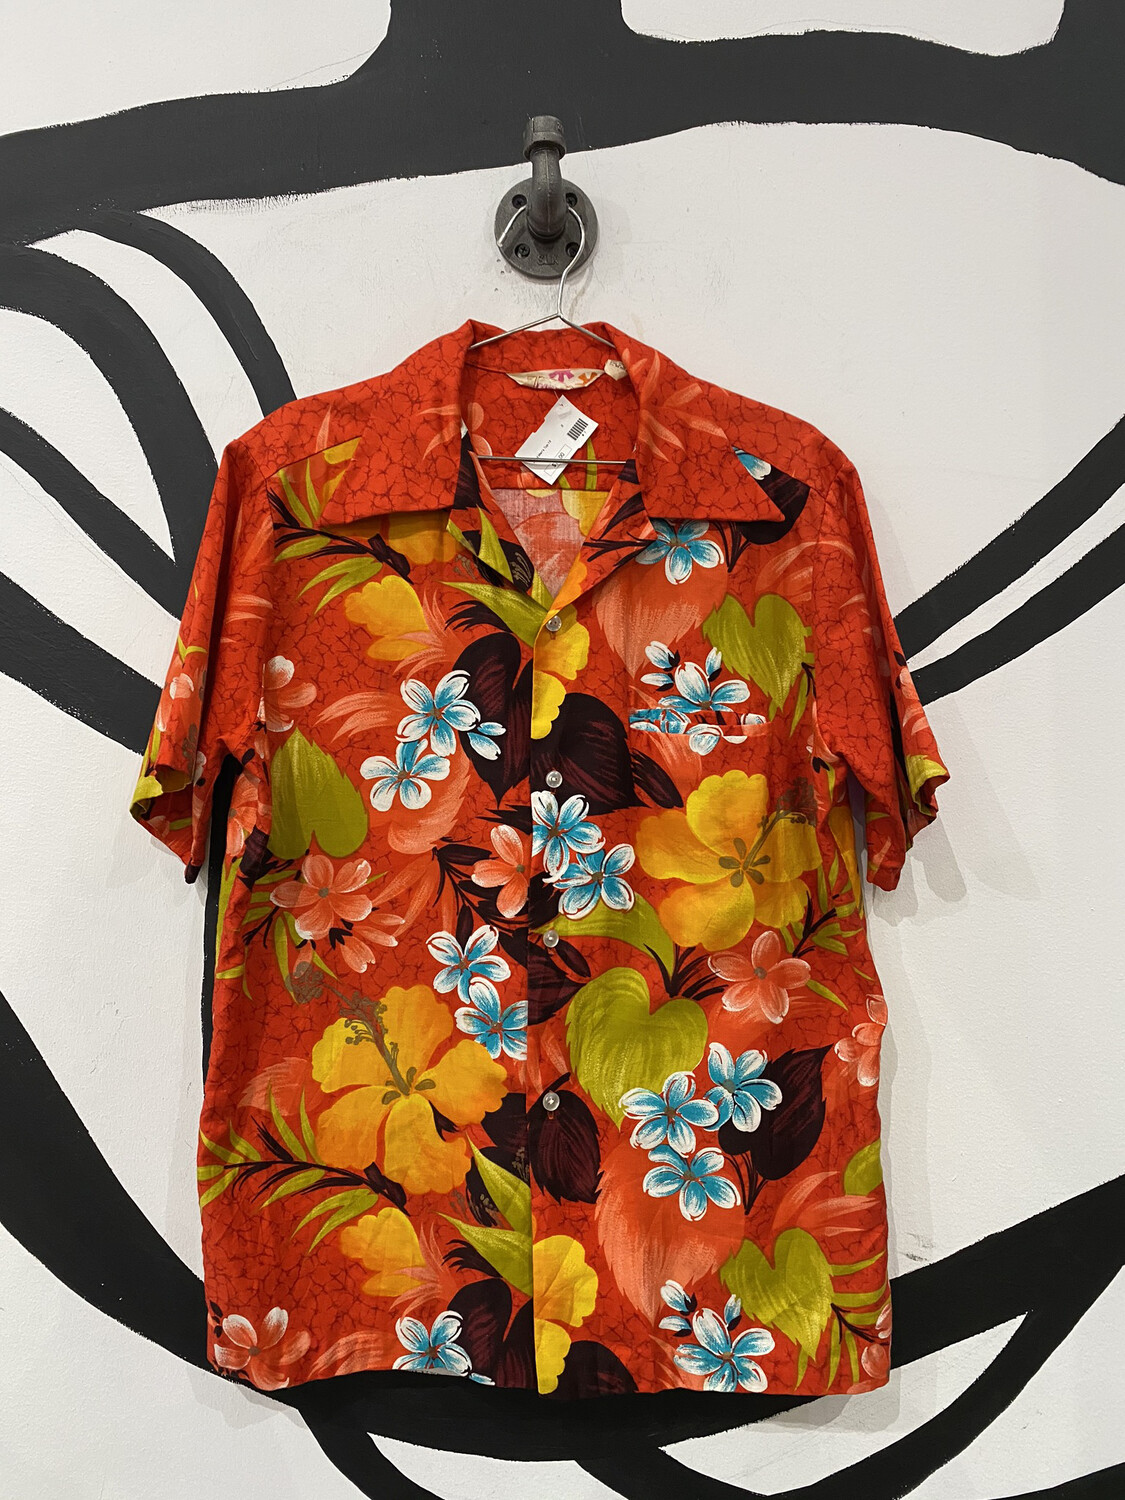 'Sears Hawaii' Orange Hawaiian Shirt - Men's S